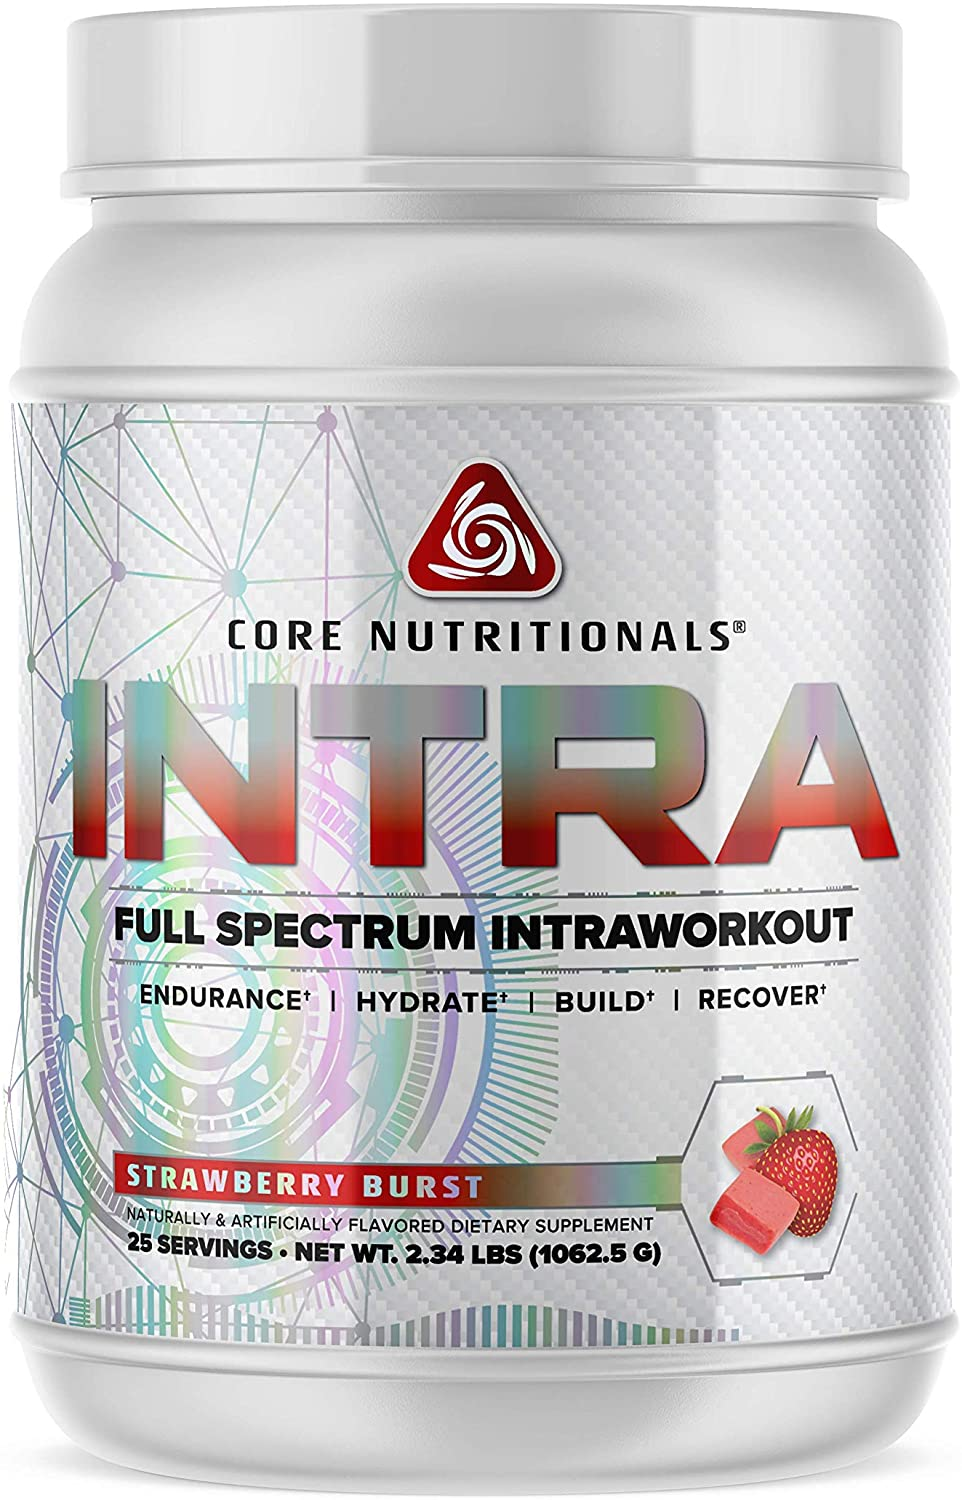 Core Nutritionals Intra Full Spectrum Intraworkout Platinum 25 Servings (Strawberry Burst)